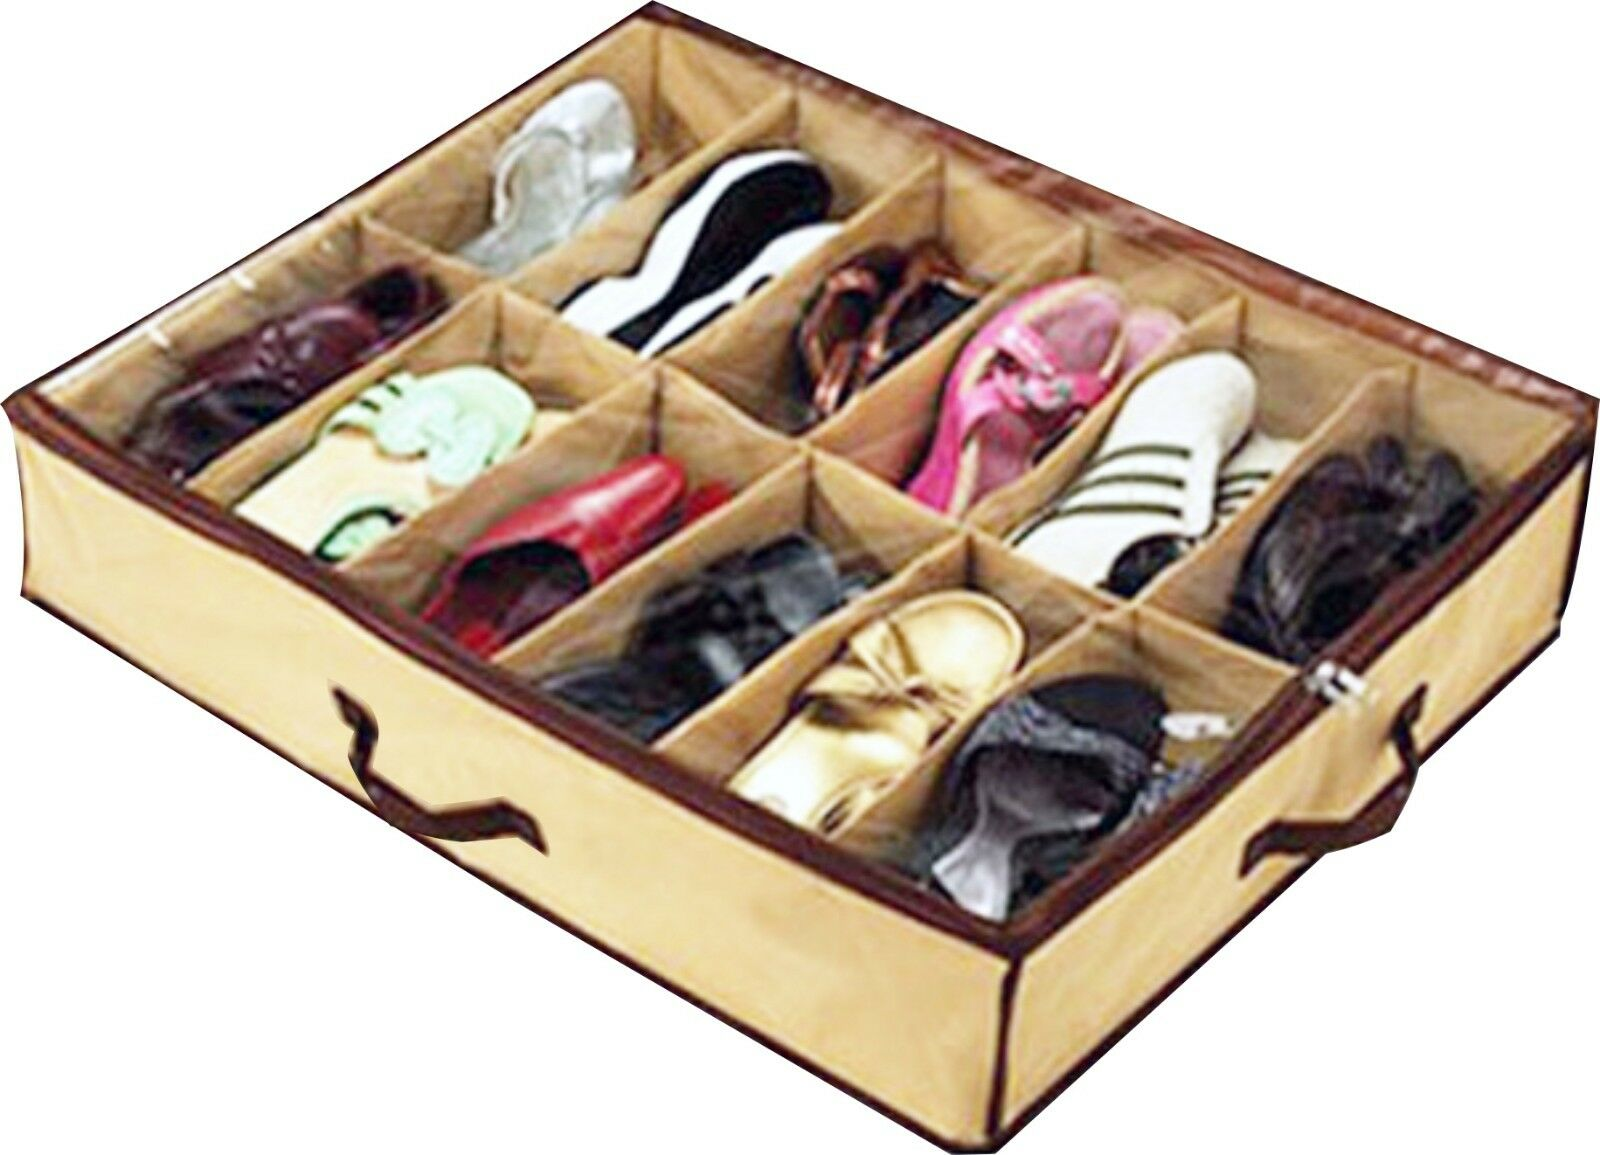 schuhe aufbewahrung shoes under box holds schuhorganize r unterbettkommode neu ebay. Black Bedroom Furniture Sets. Home Design Ideas